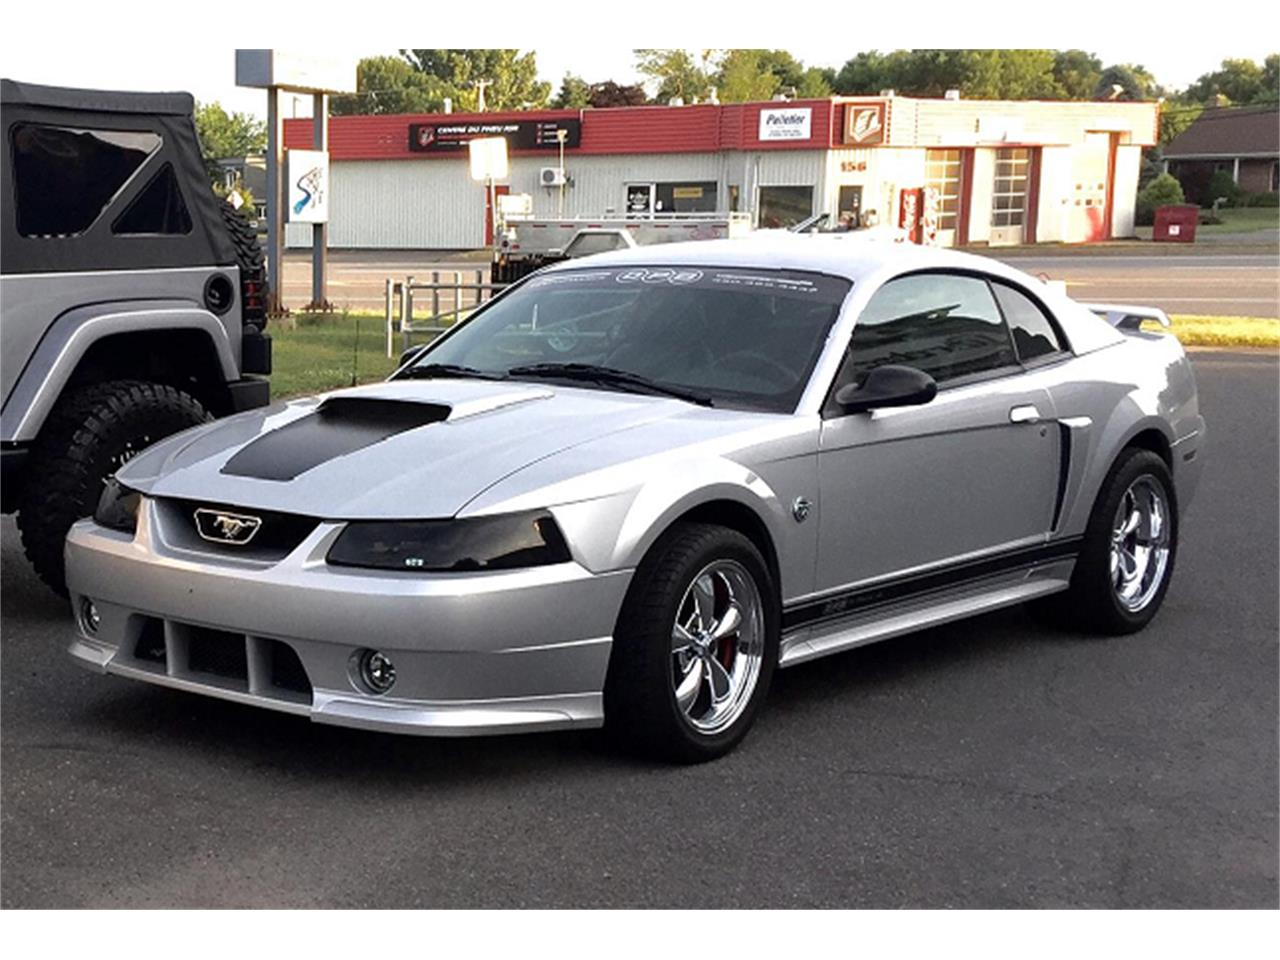 2004 Ford Mustang Gt For Sale Classiccars Com Cc 1057508